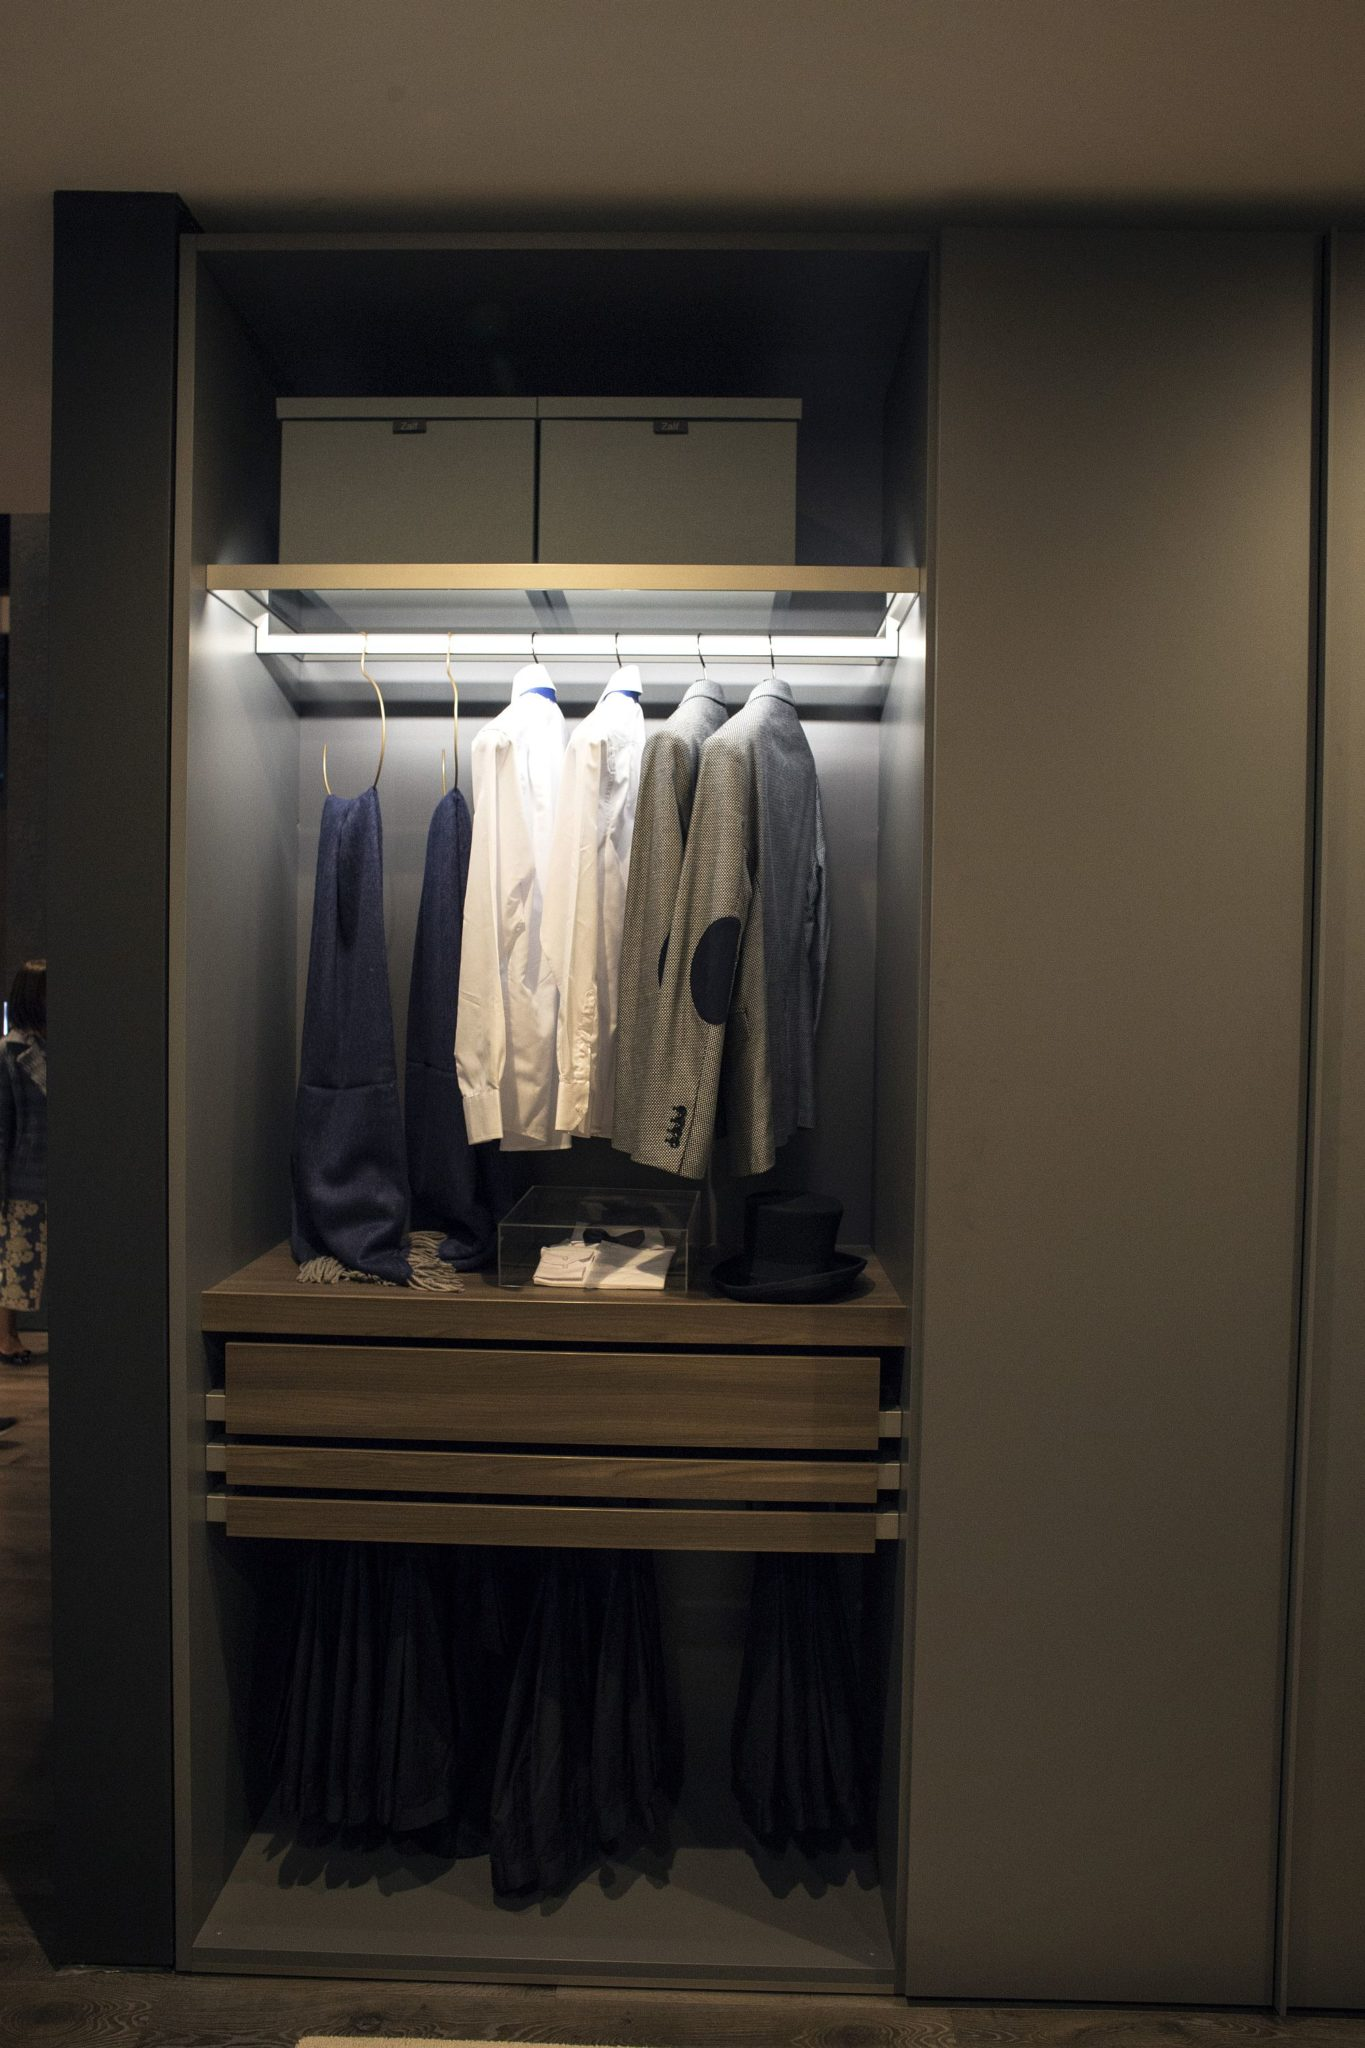 Lighting the closet beautifully combines aesthetics with ergonomics